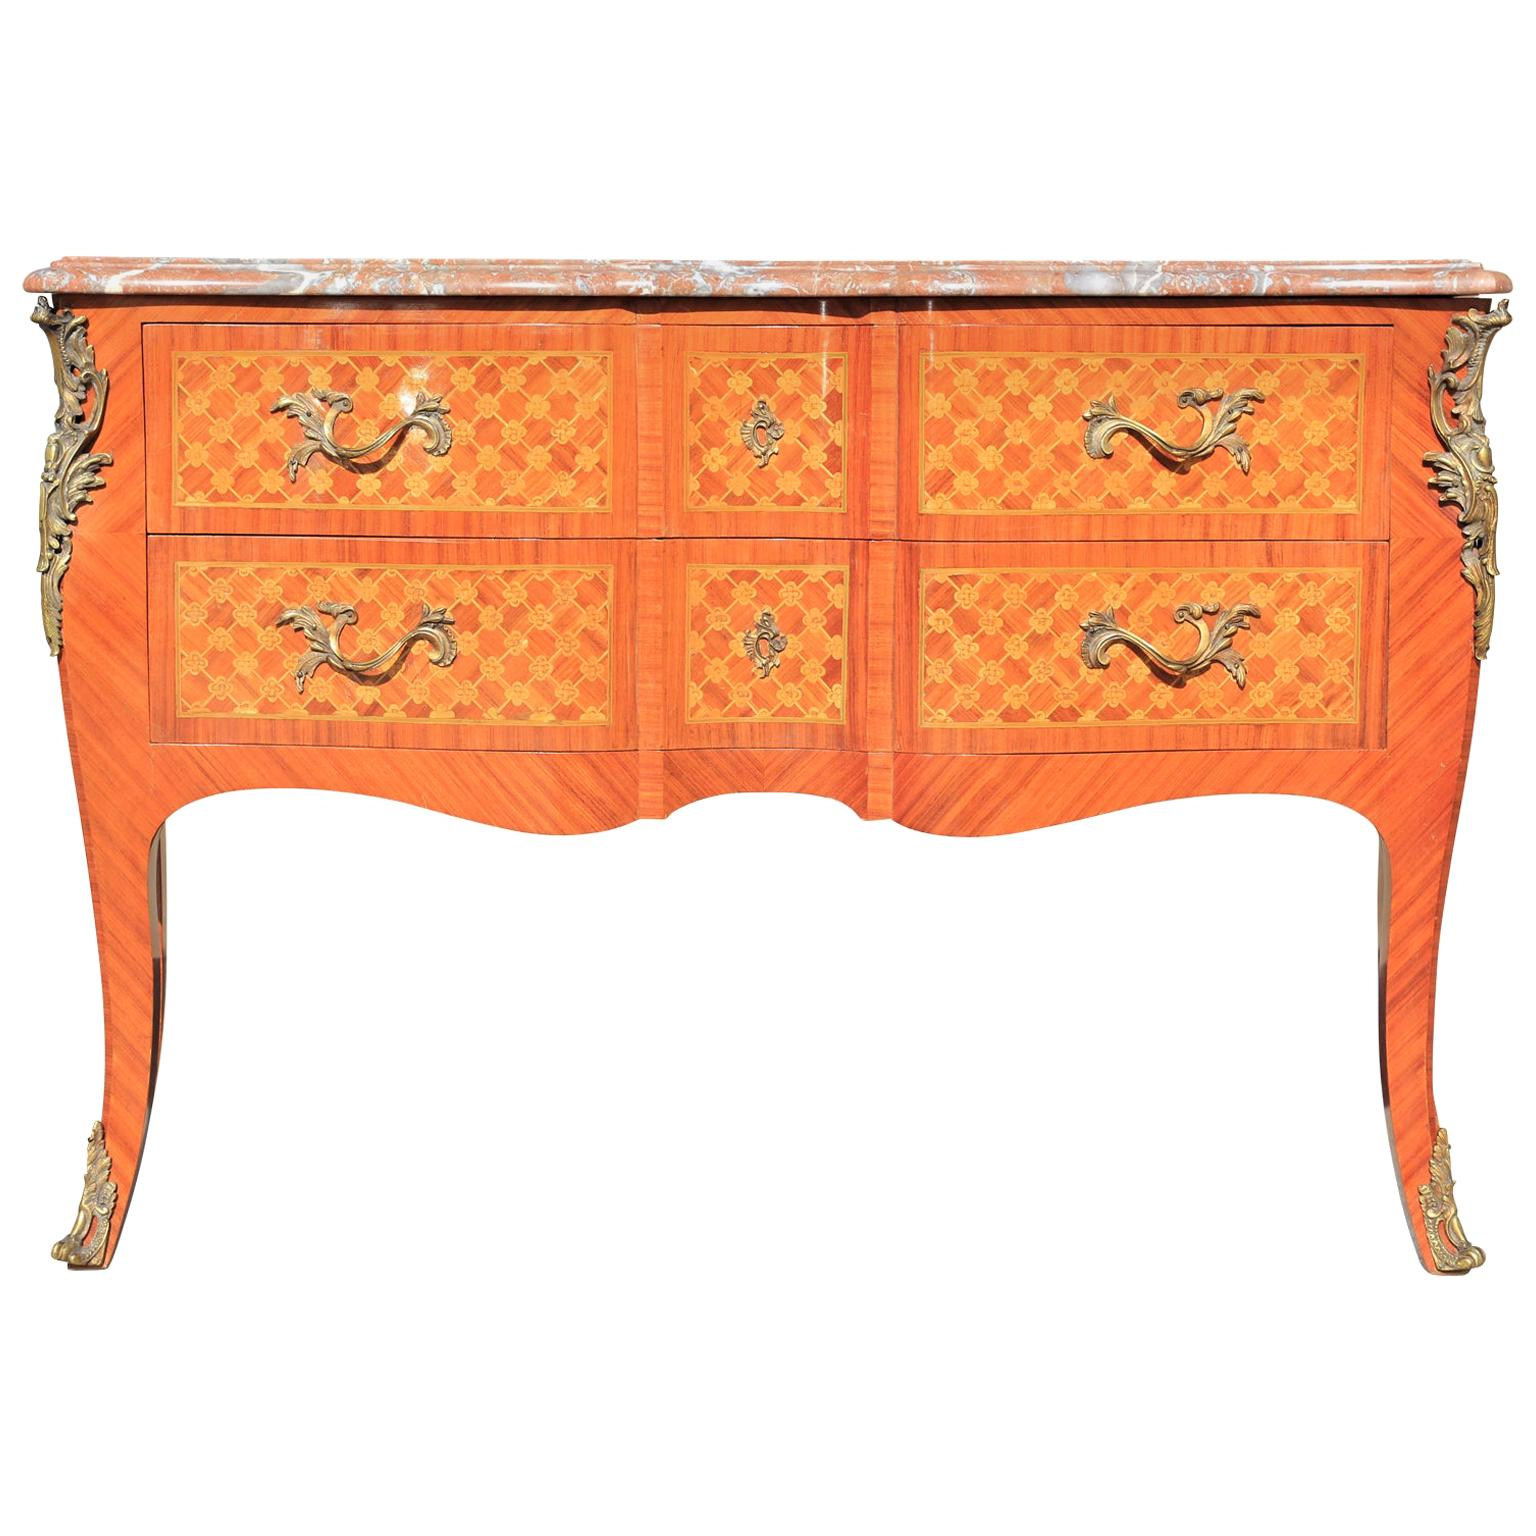 Perfect Louis XV Style French Parquetry Ormolu Mounted Marble Commode or Chest